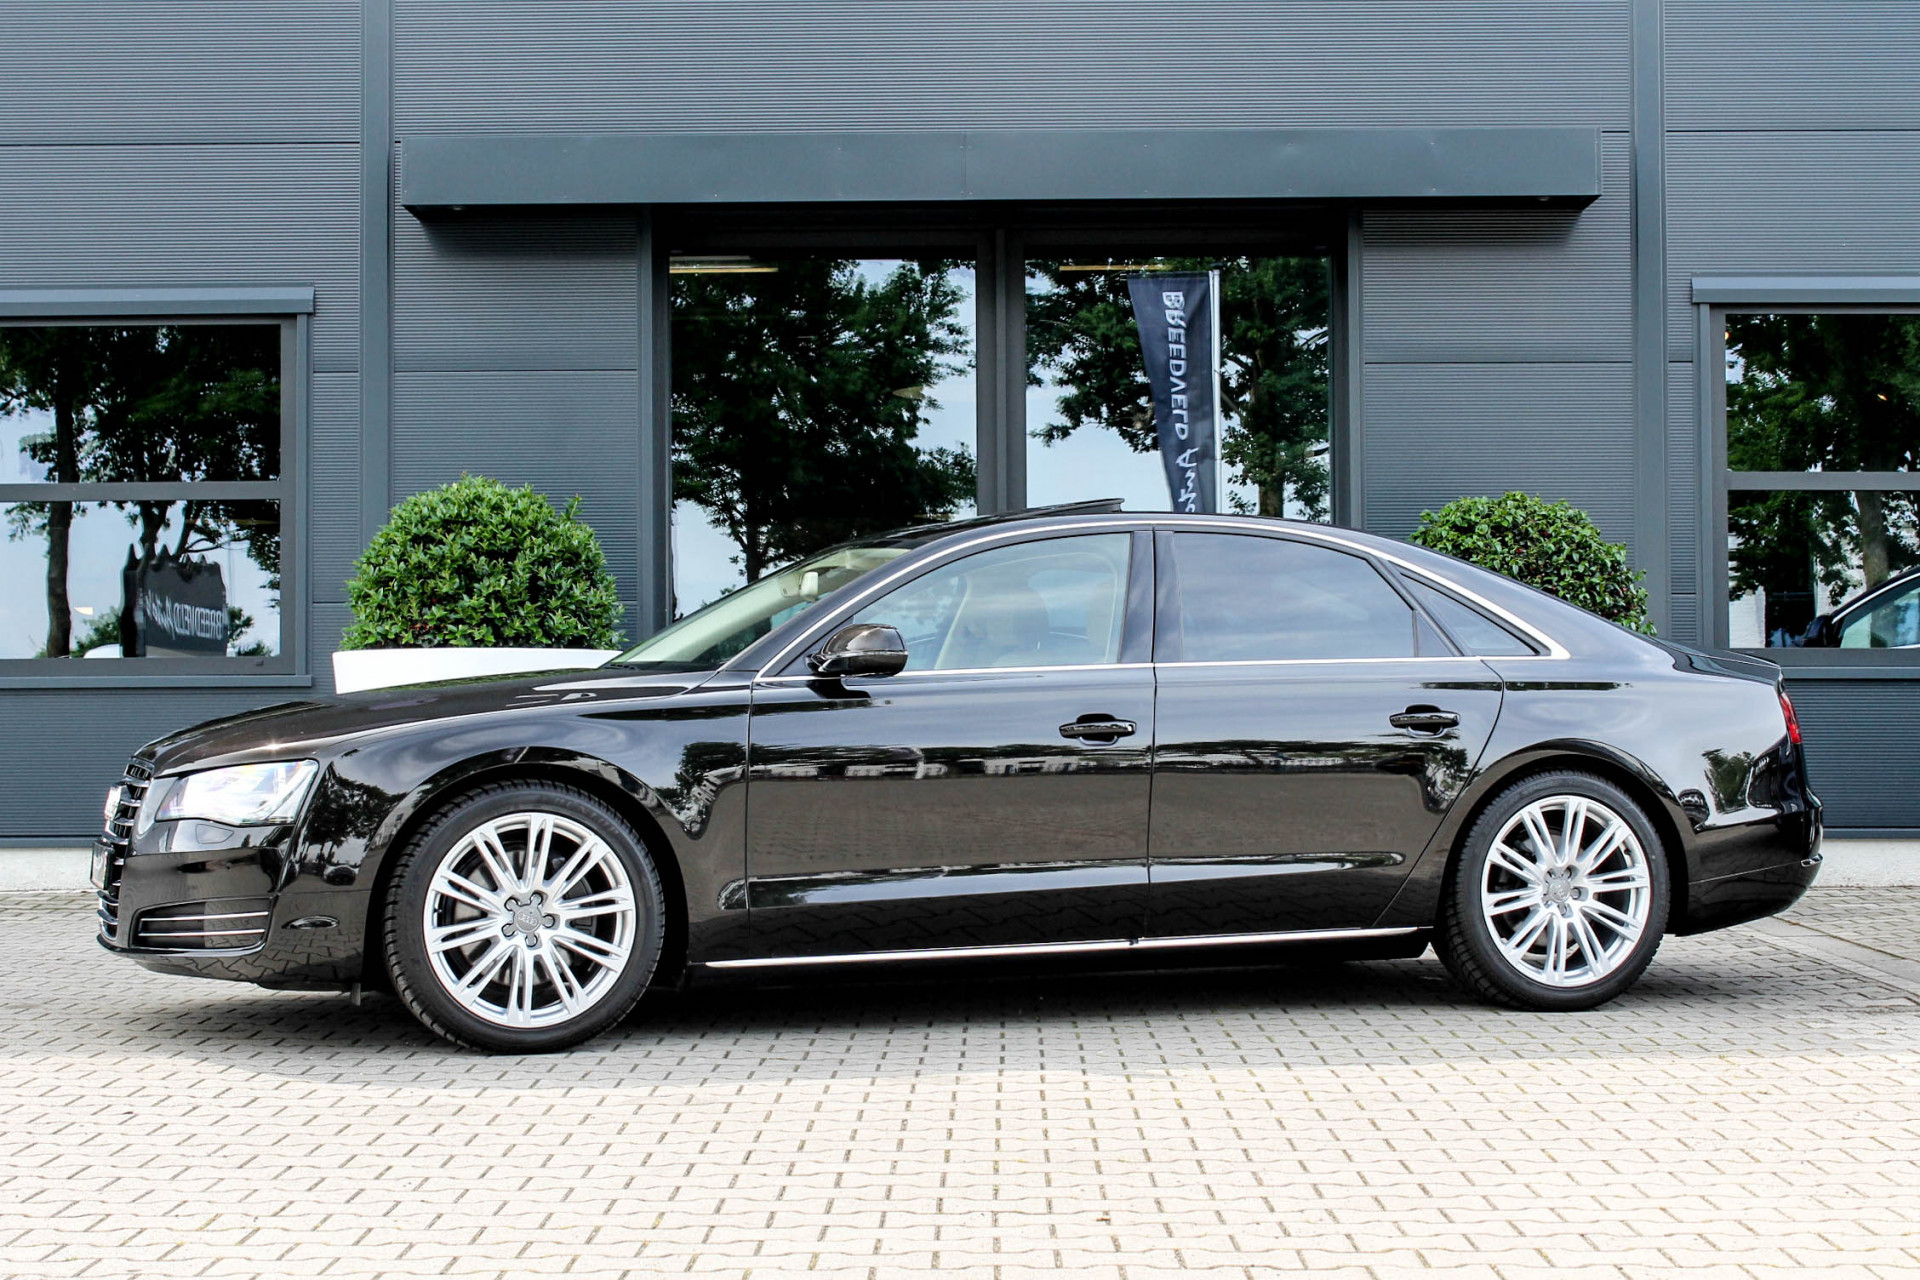 Tweedehands Audi A8 occasion